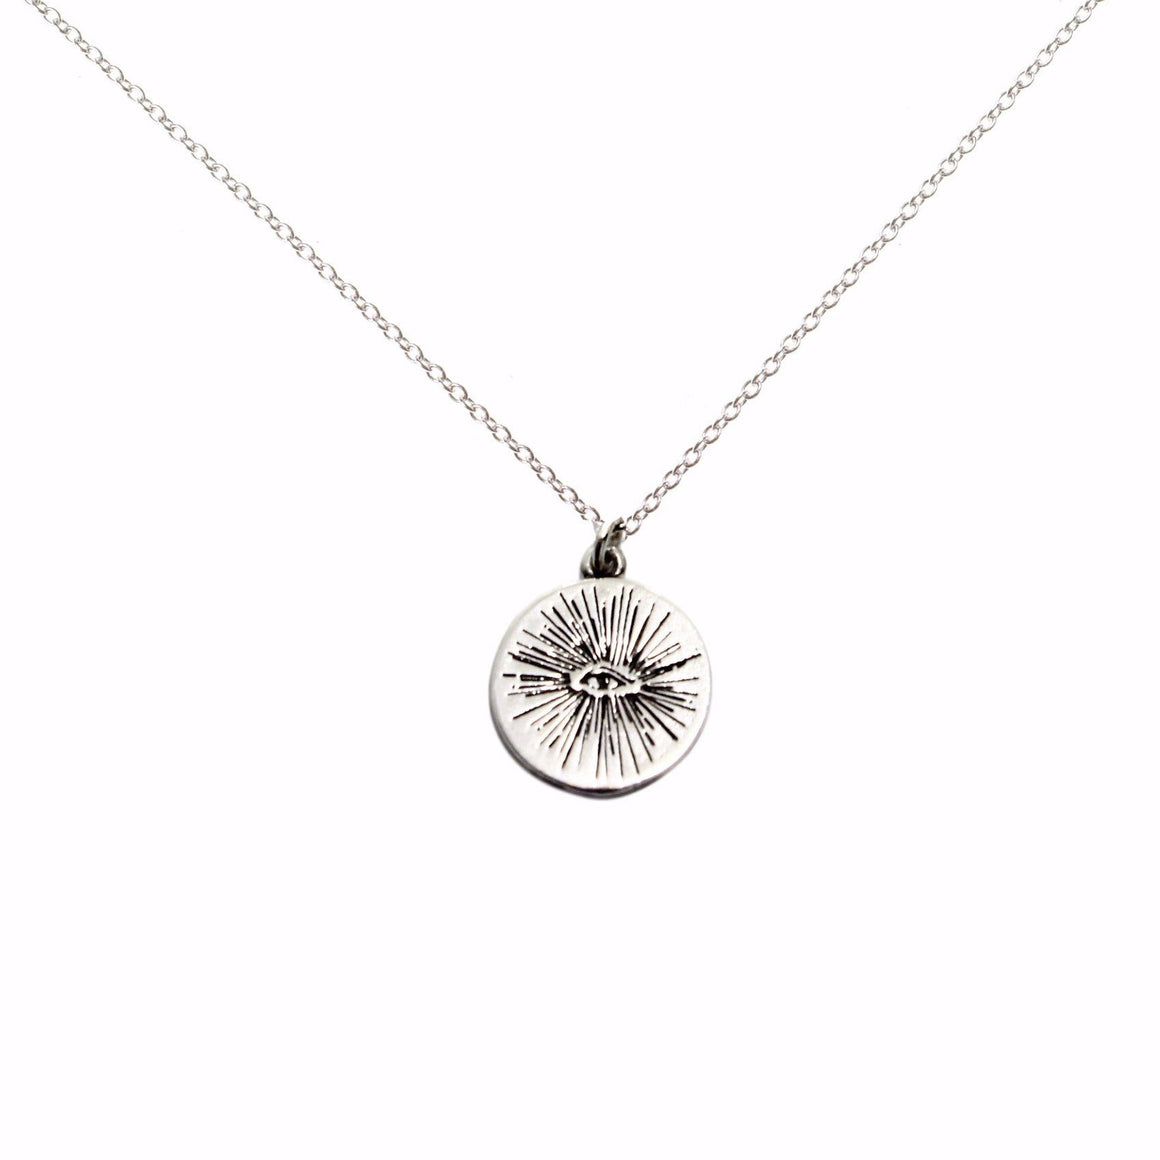 EYENAMOUR Necklace - Silver - Alona